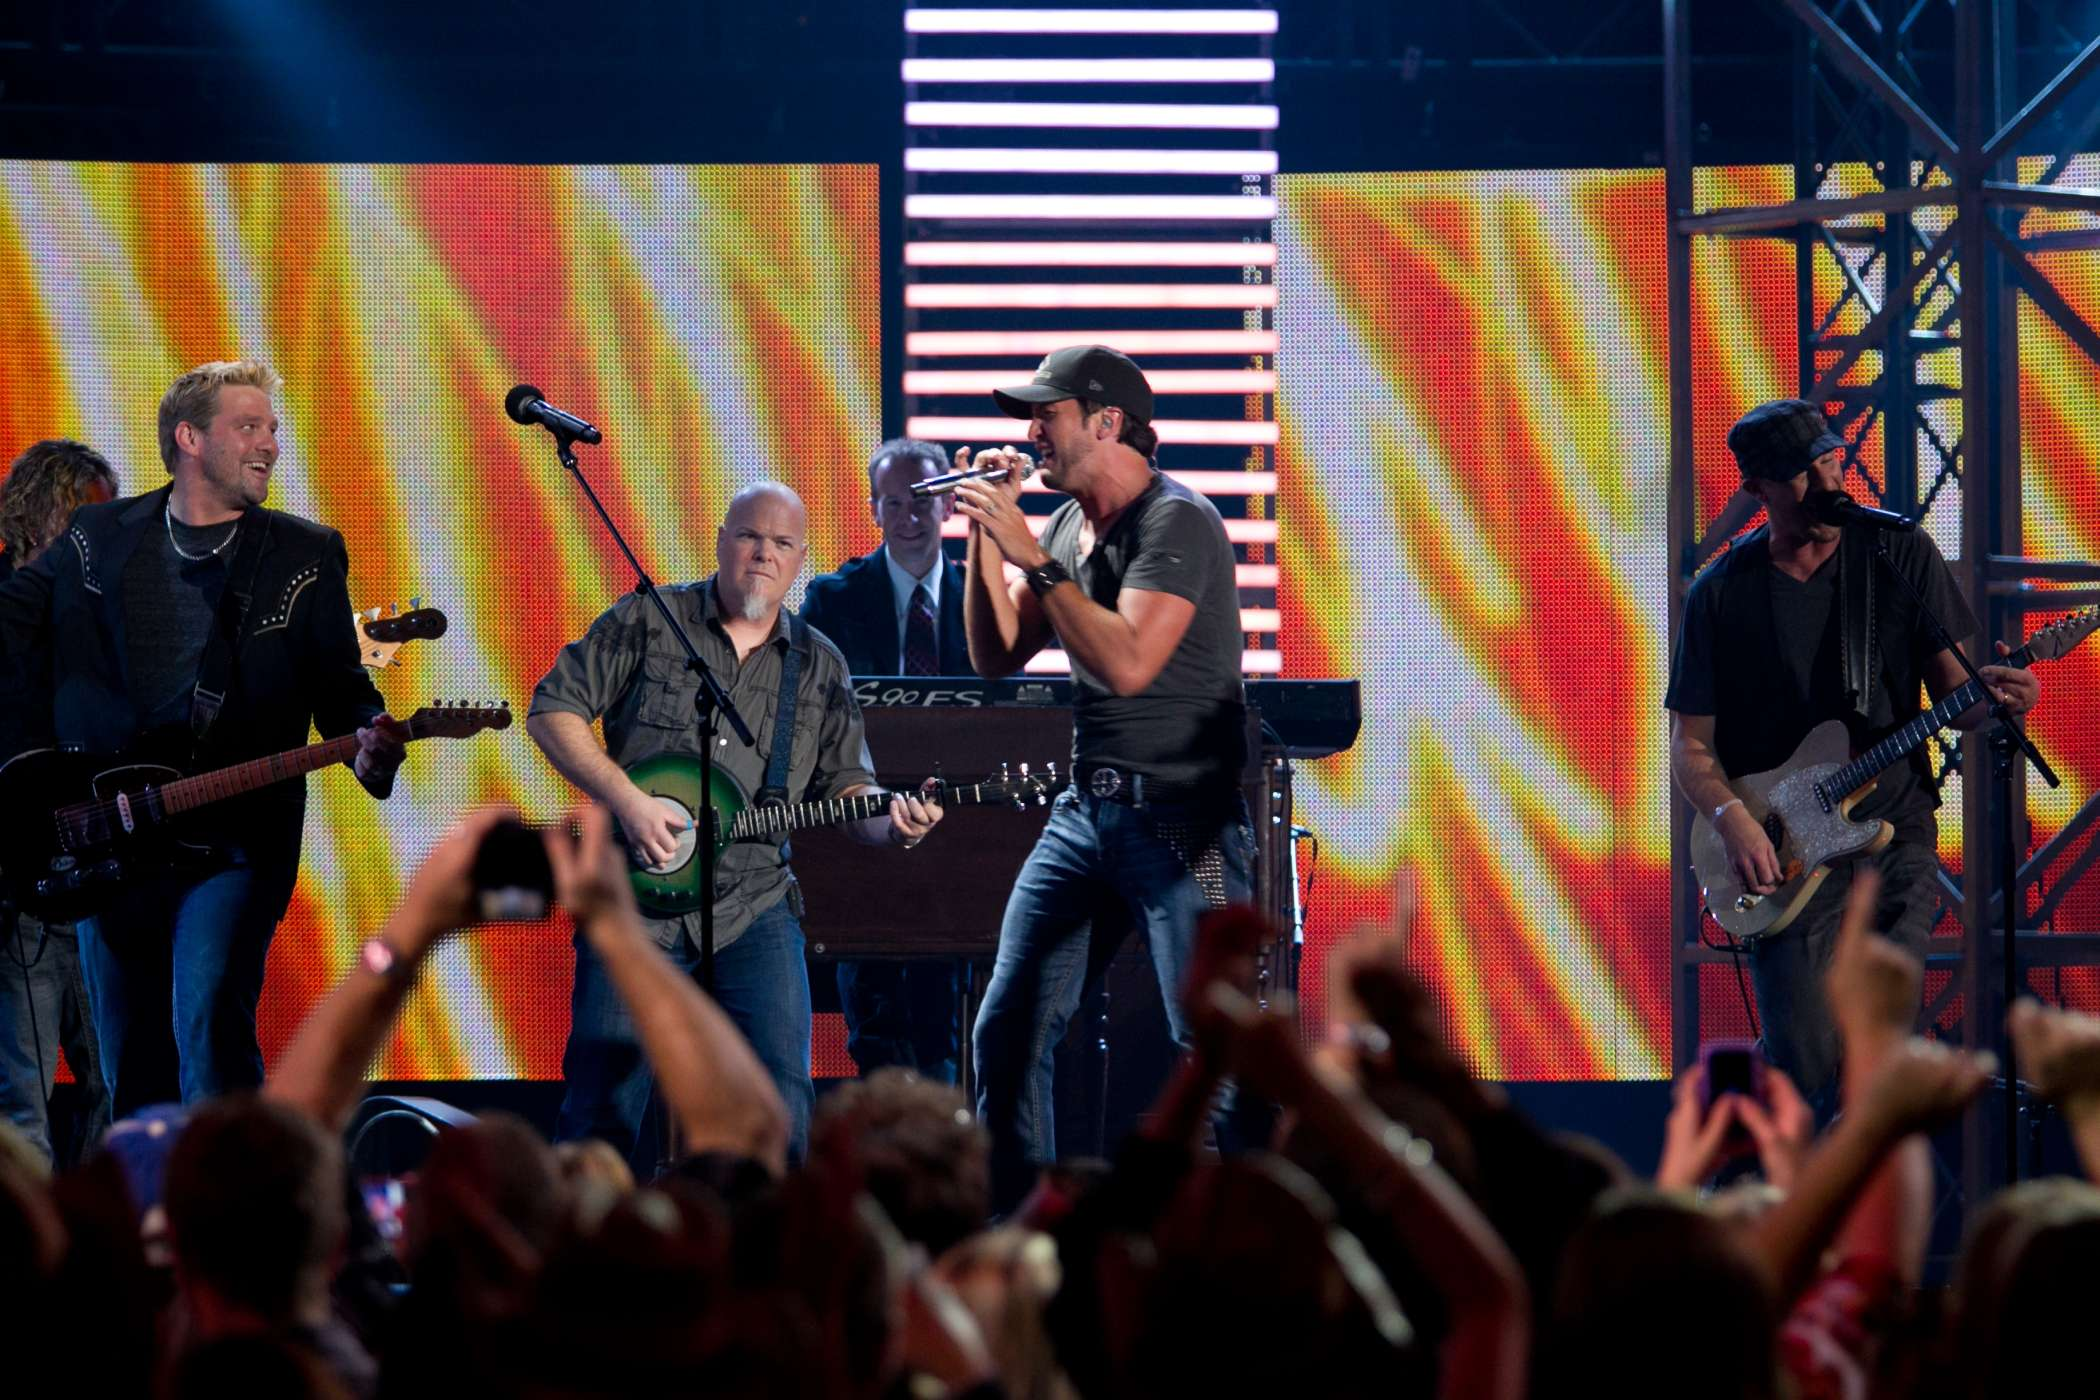 Luke Bryan_Doc Walker CCMA 2011 #2.JPG